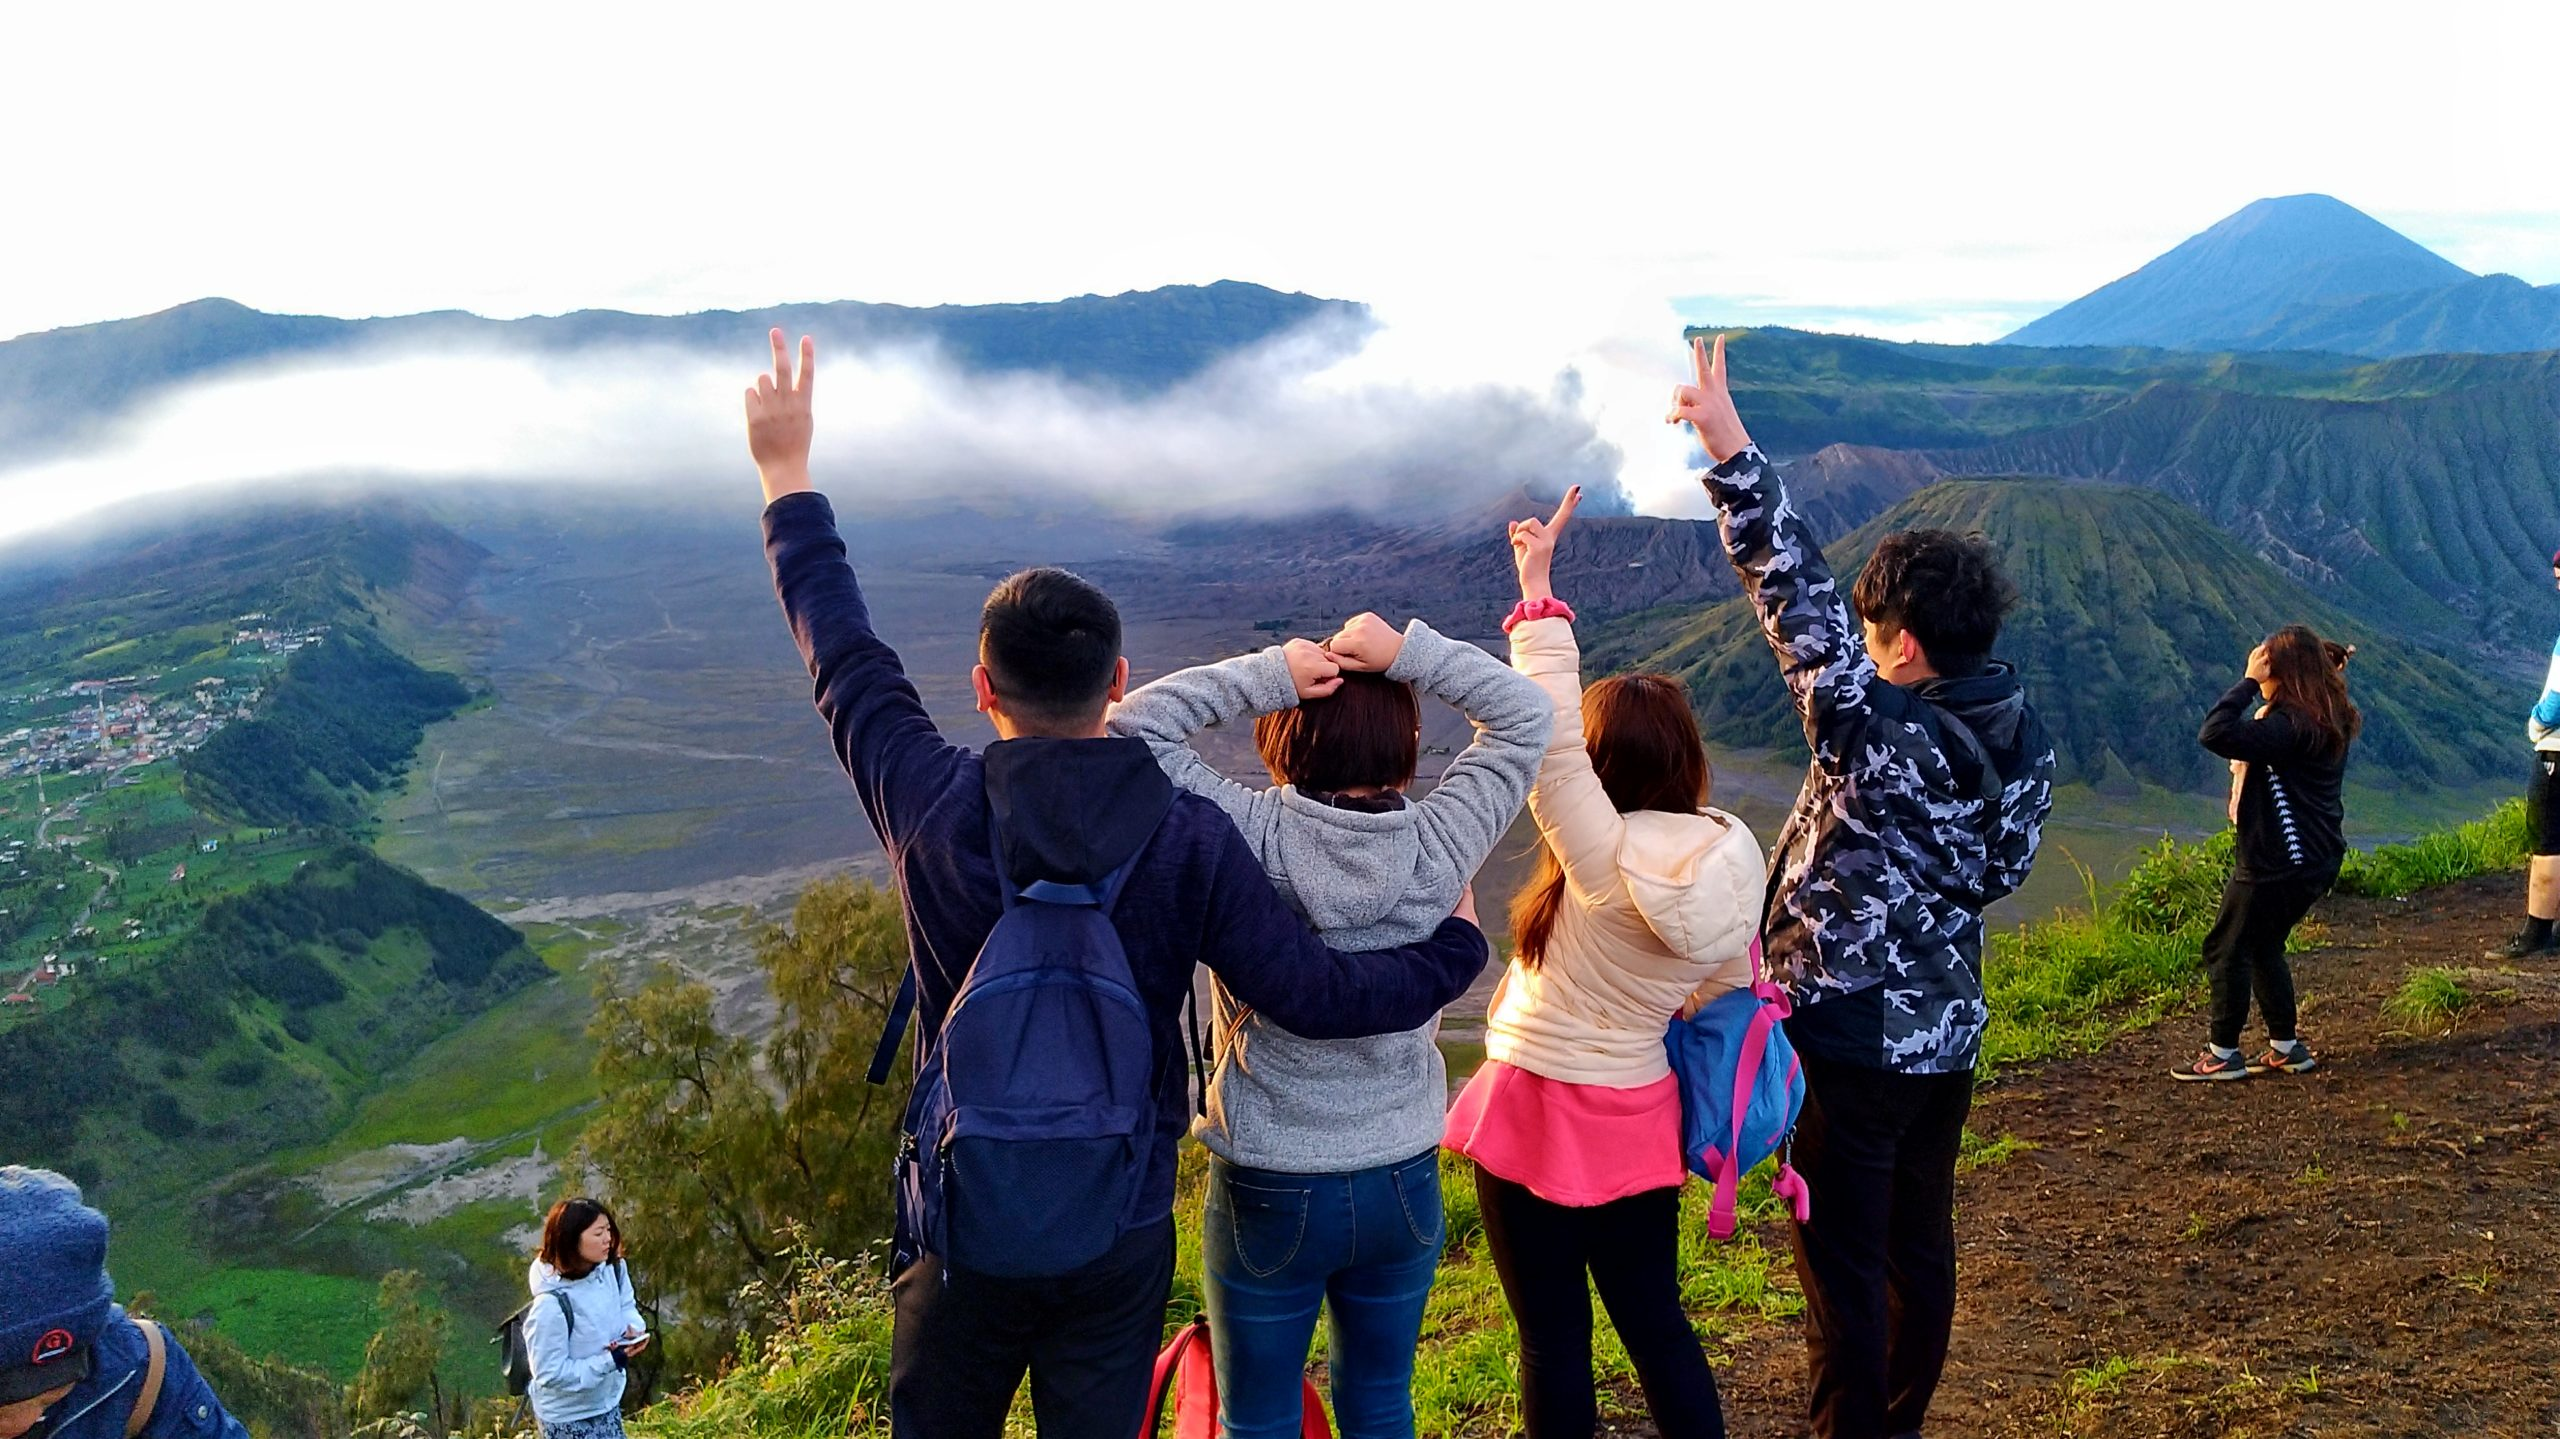 Mount Bromo Ijen Crater Tour from Singapore Malaysia